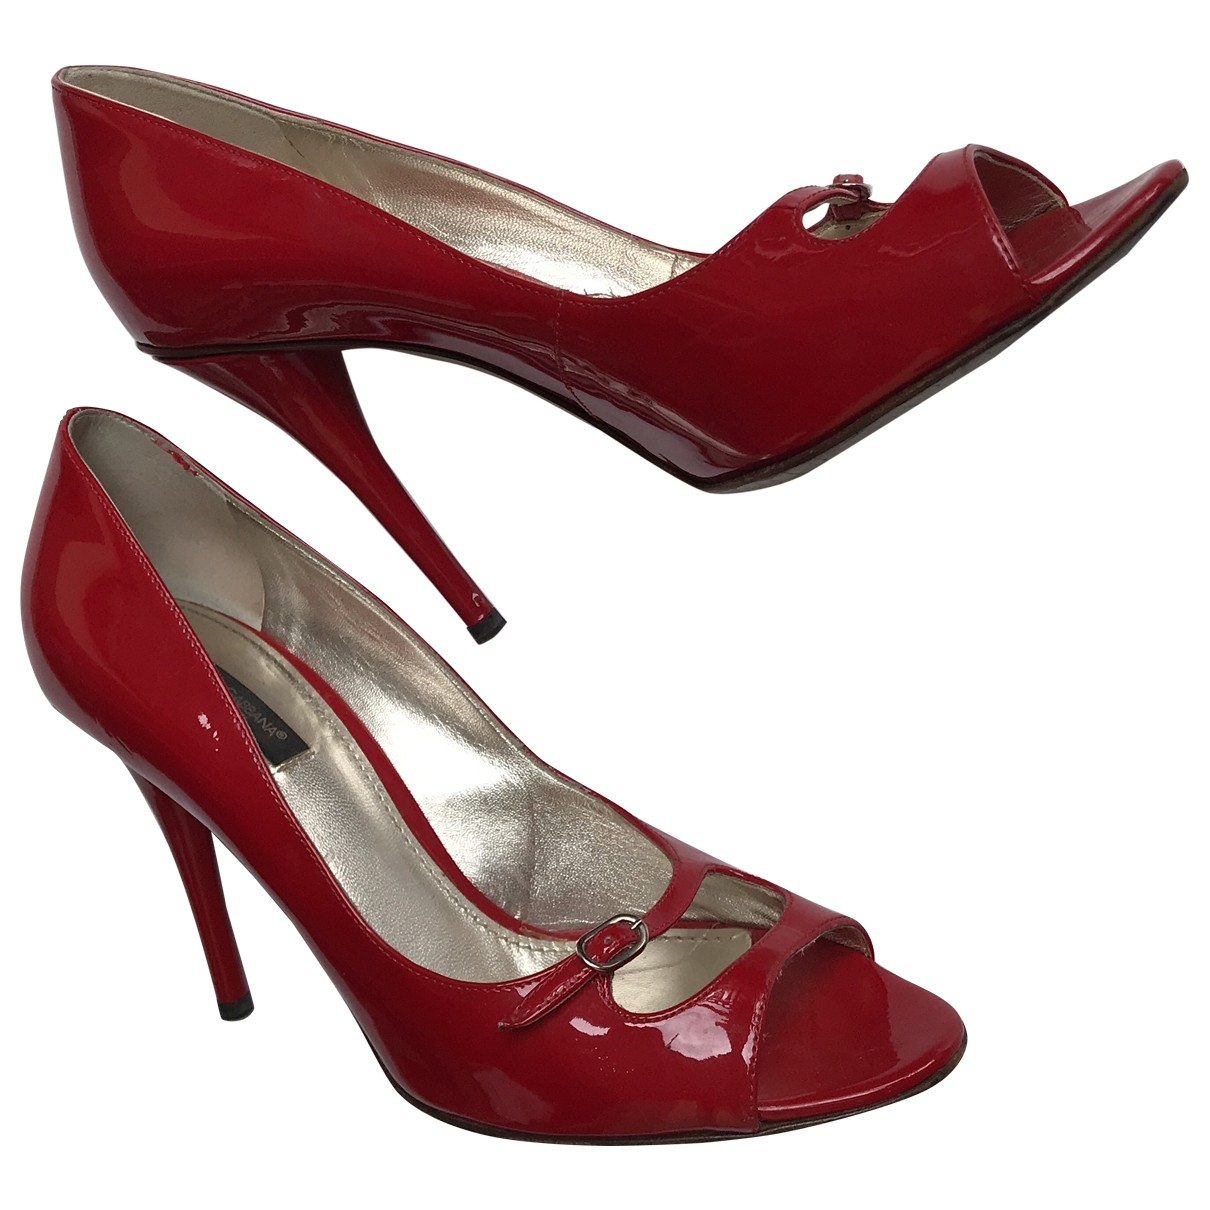 Dolce & Gabbana \N Red Patent leather Heels for Women 39 EU